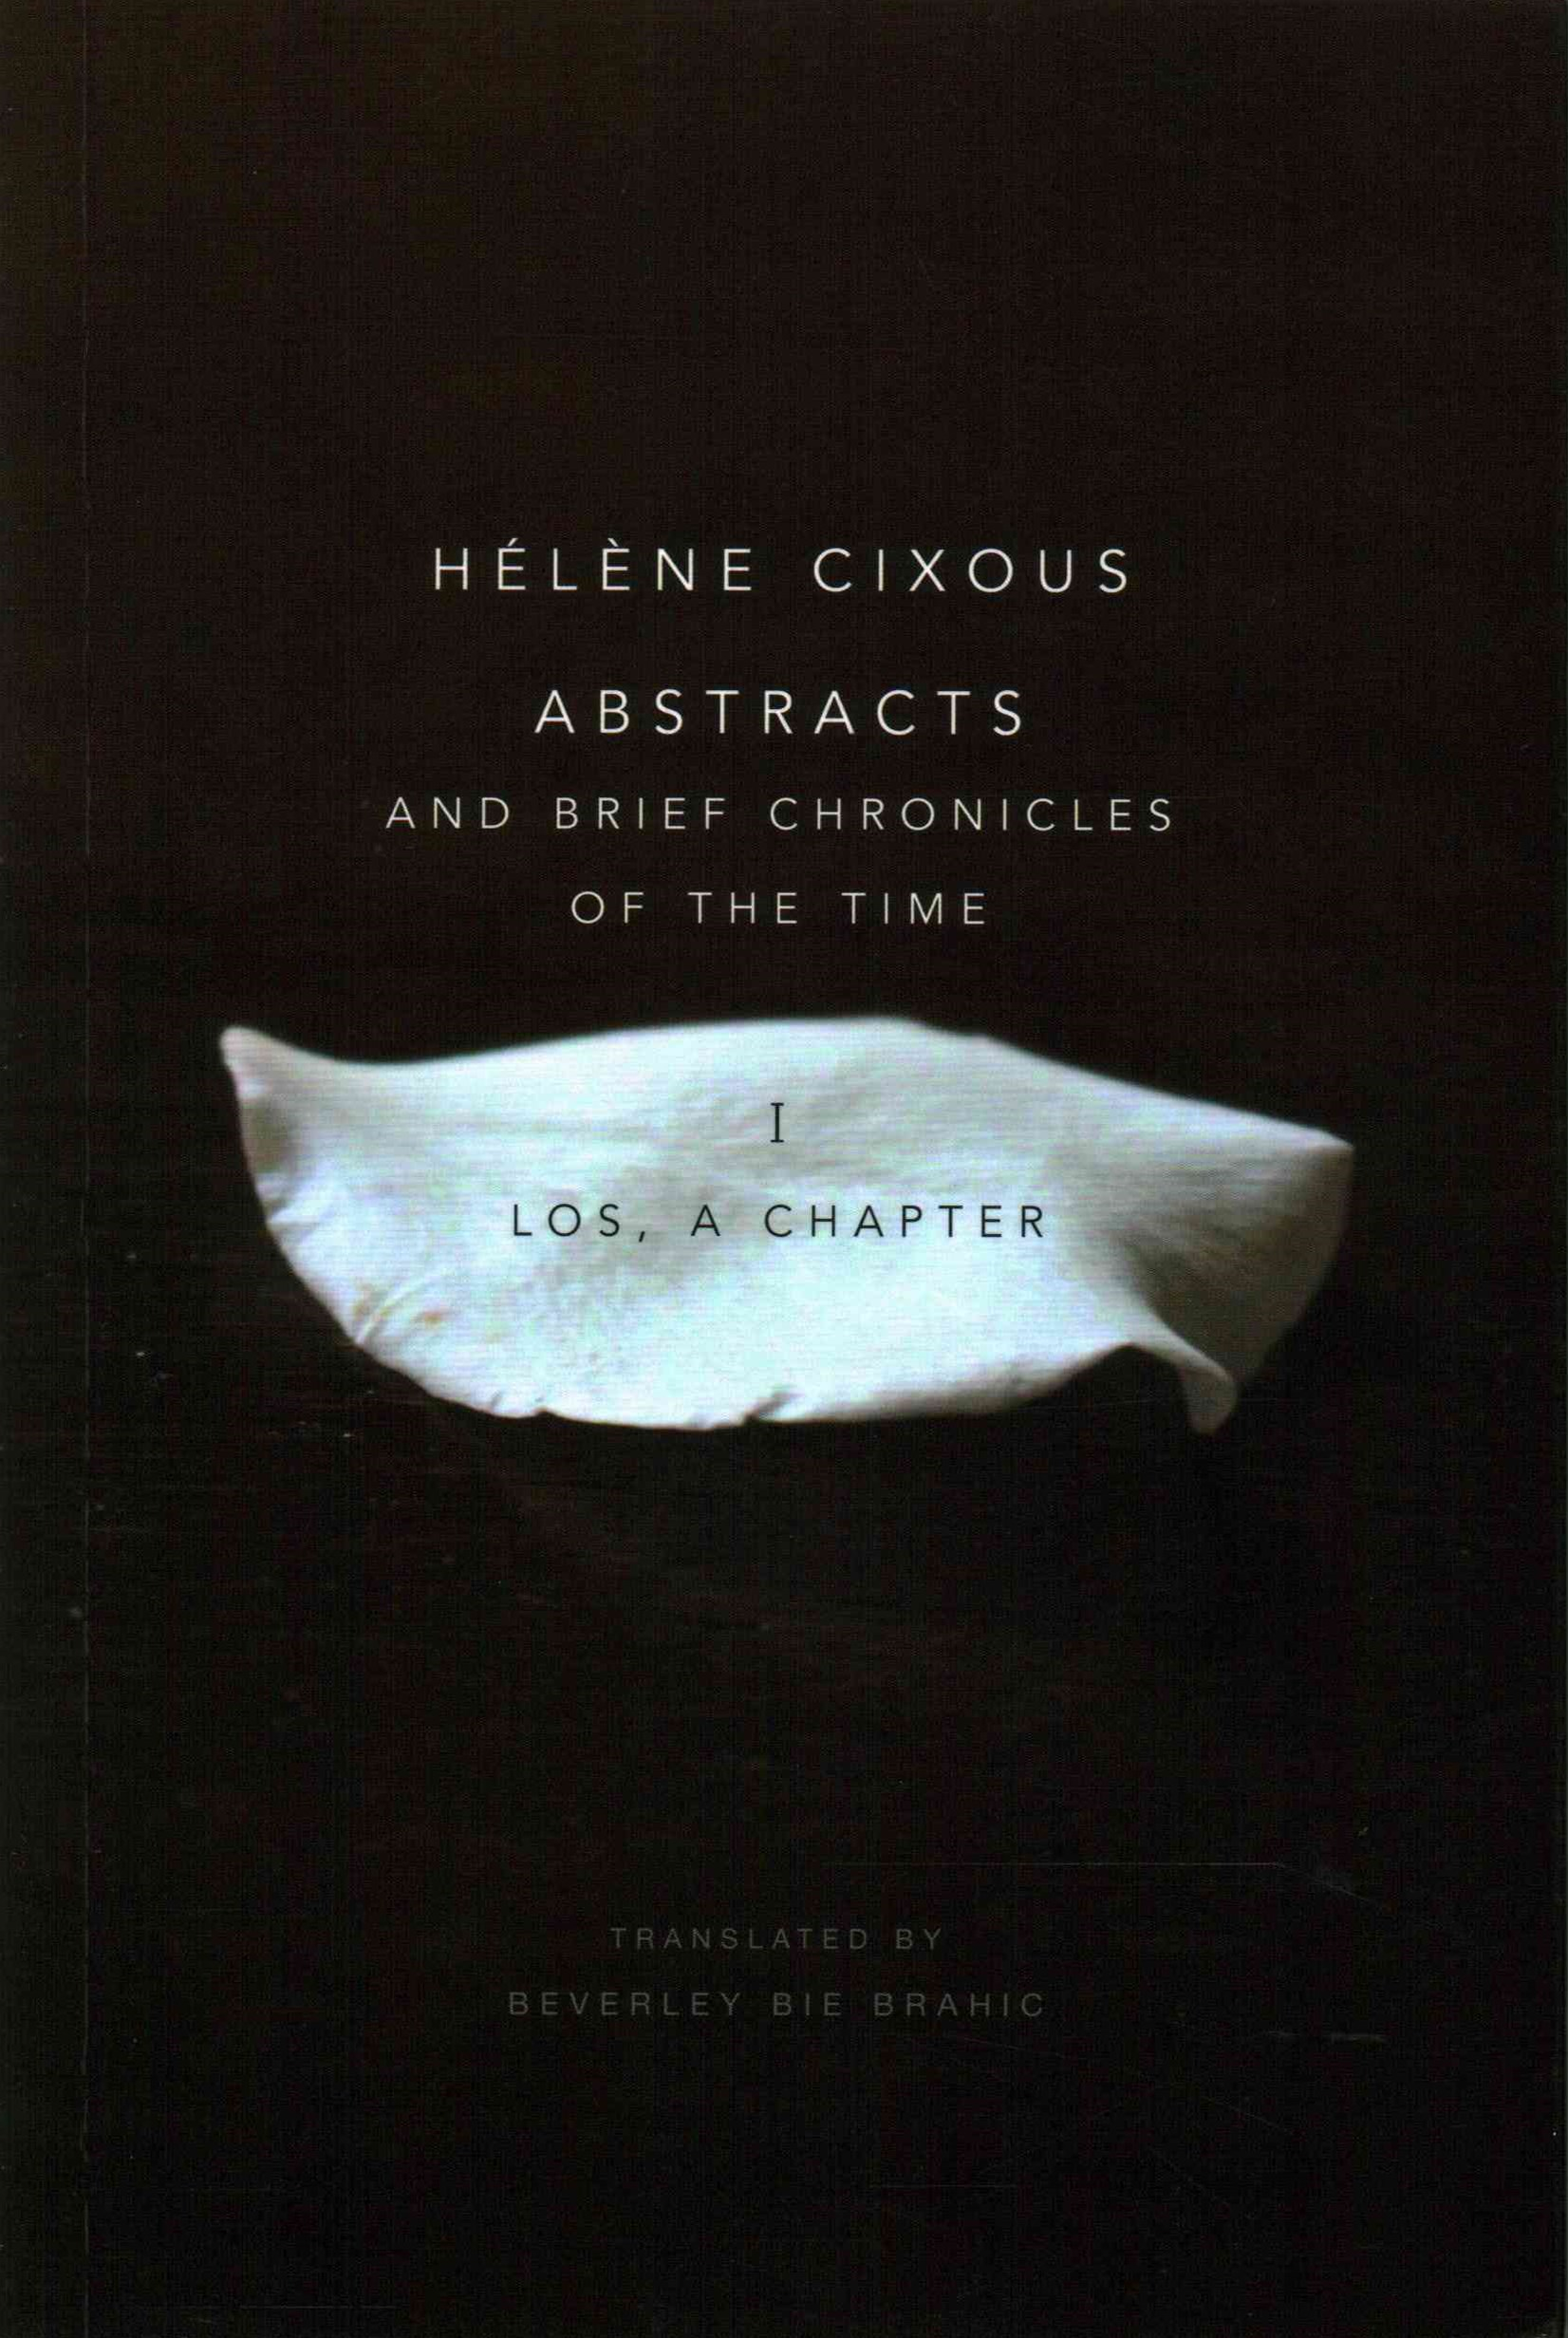 Abstracts and Brief Chronicles of the Time - I.   Los, a Chapter